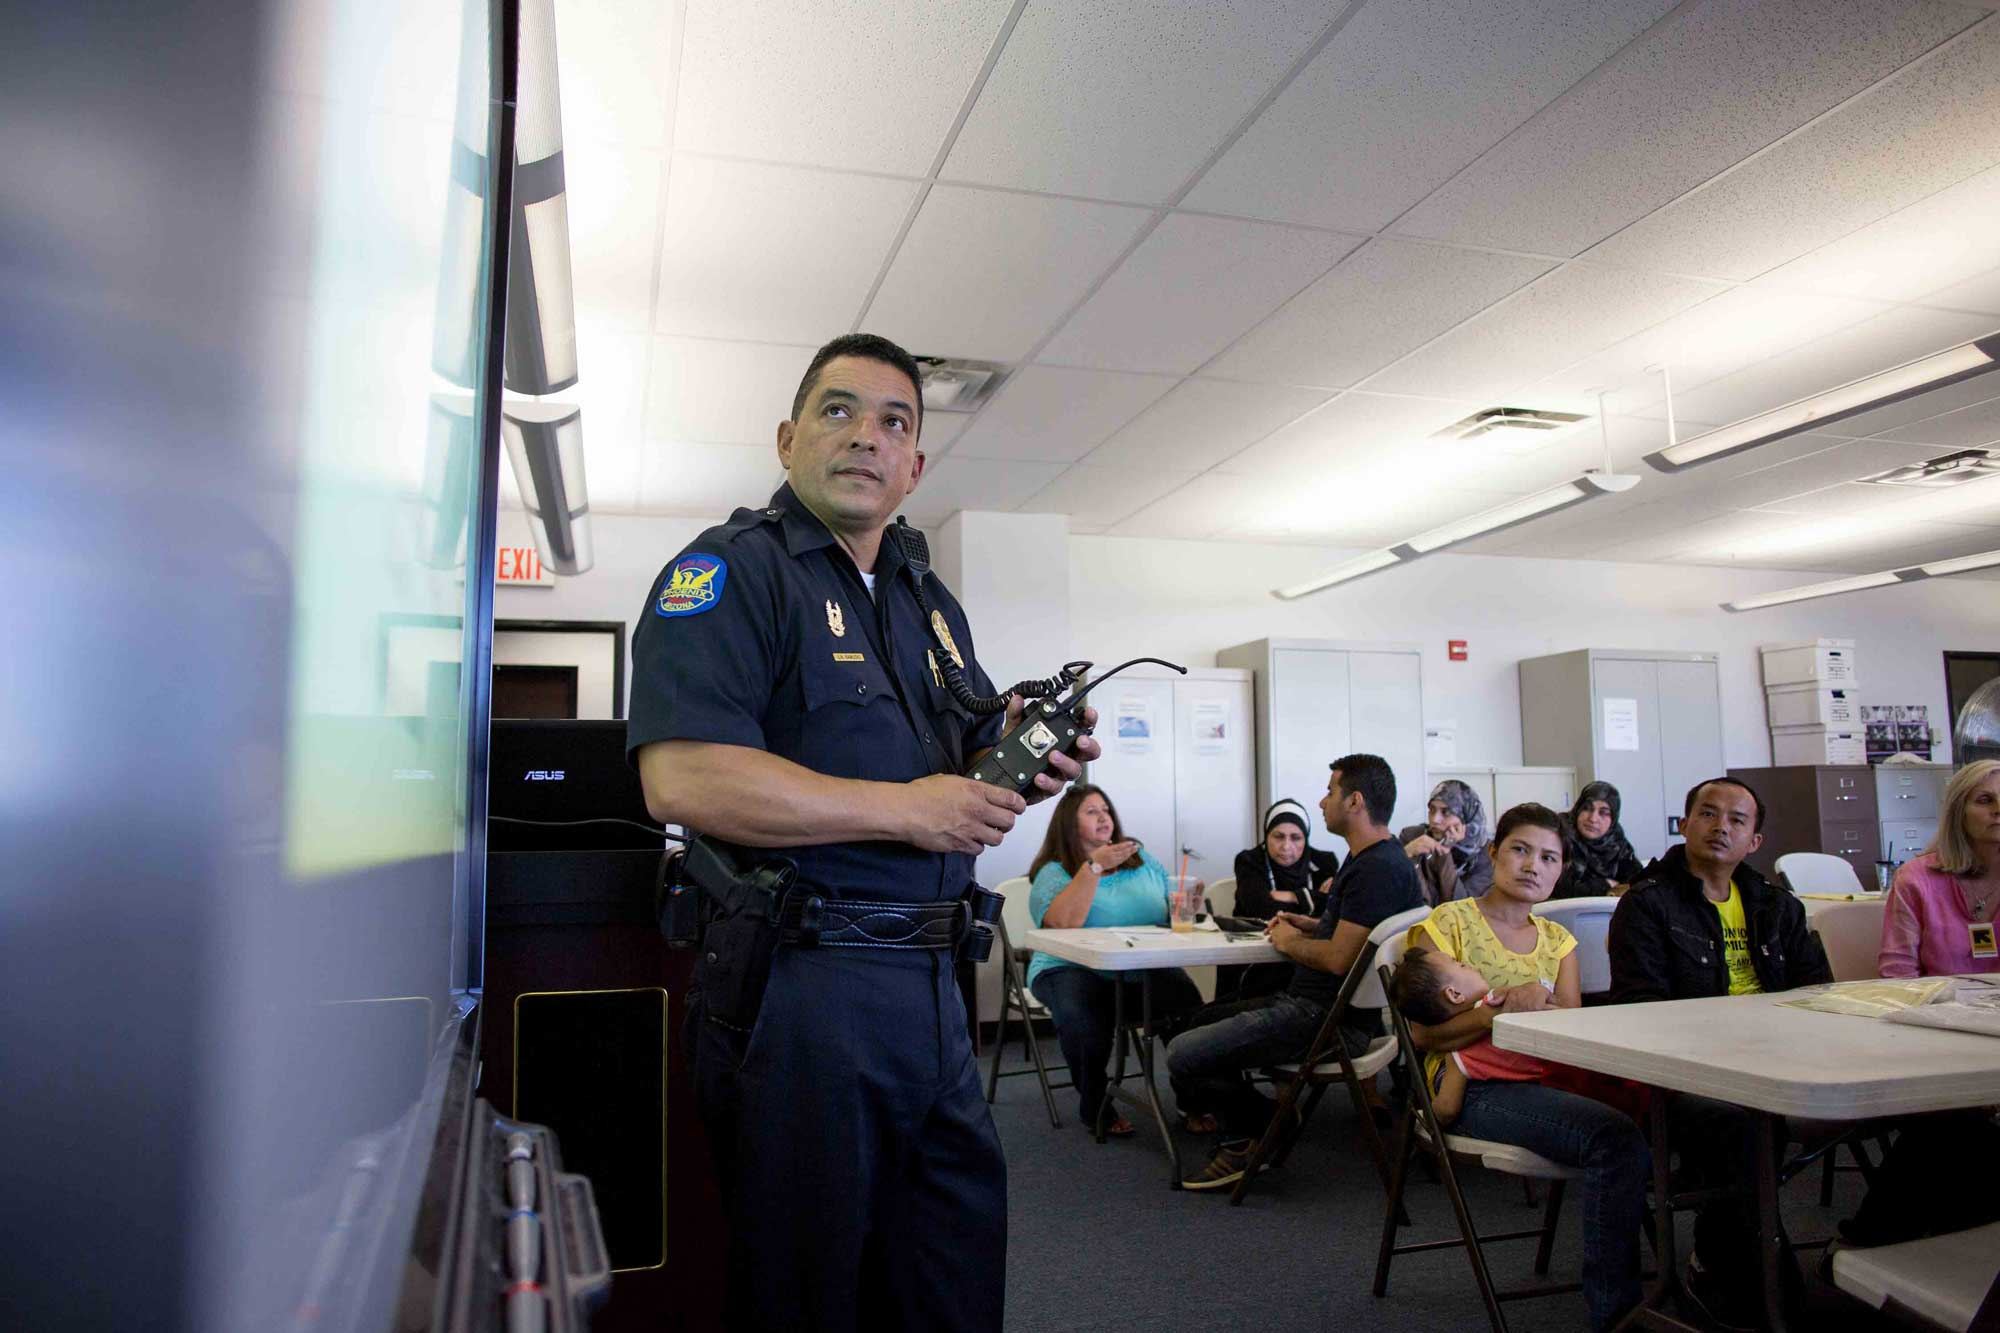 A police officer speaking to refugees about community services during a cultural orientation class